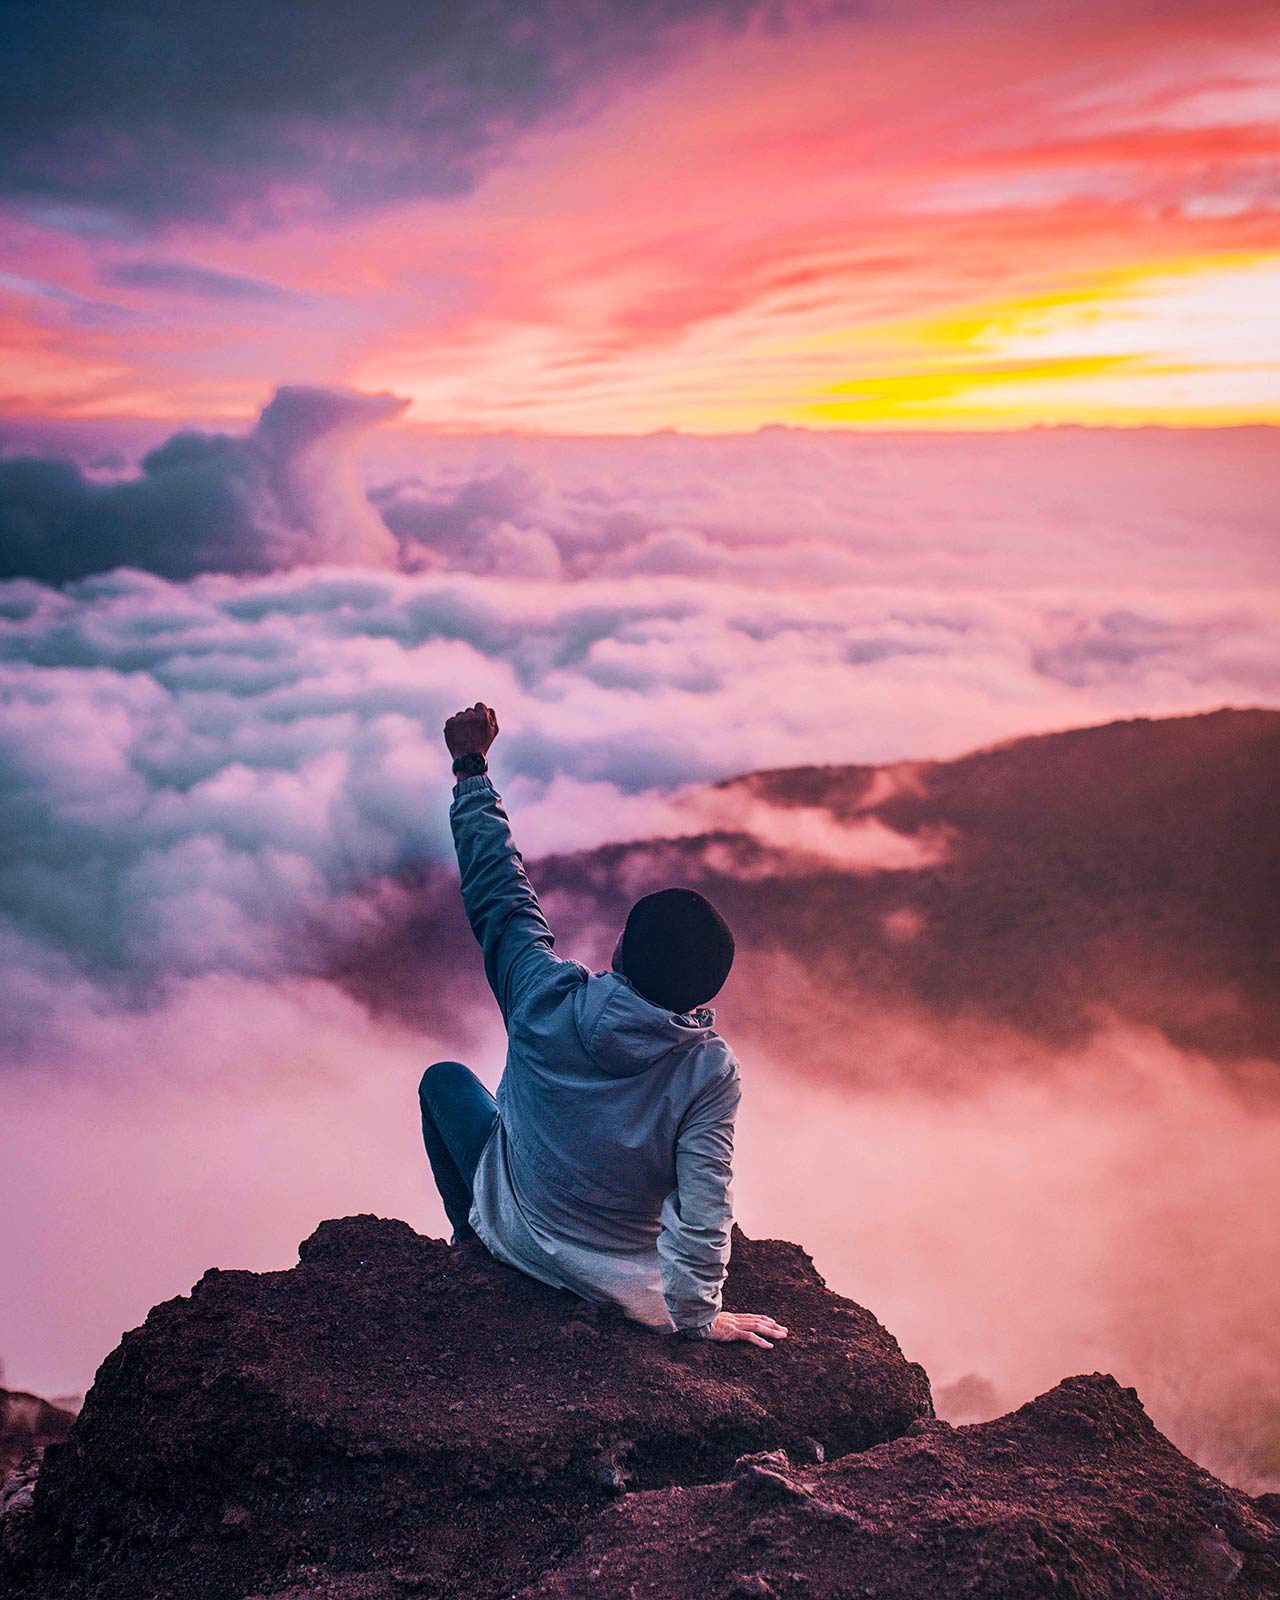 Person sitting on rock with fist in air over clouds.